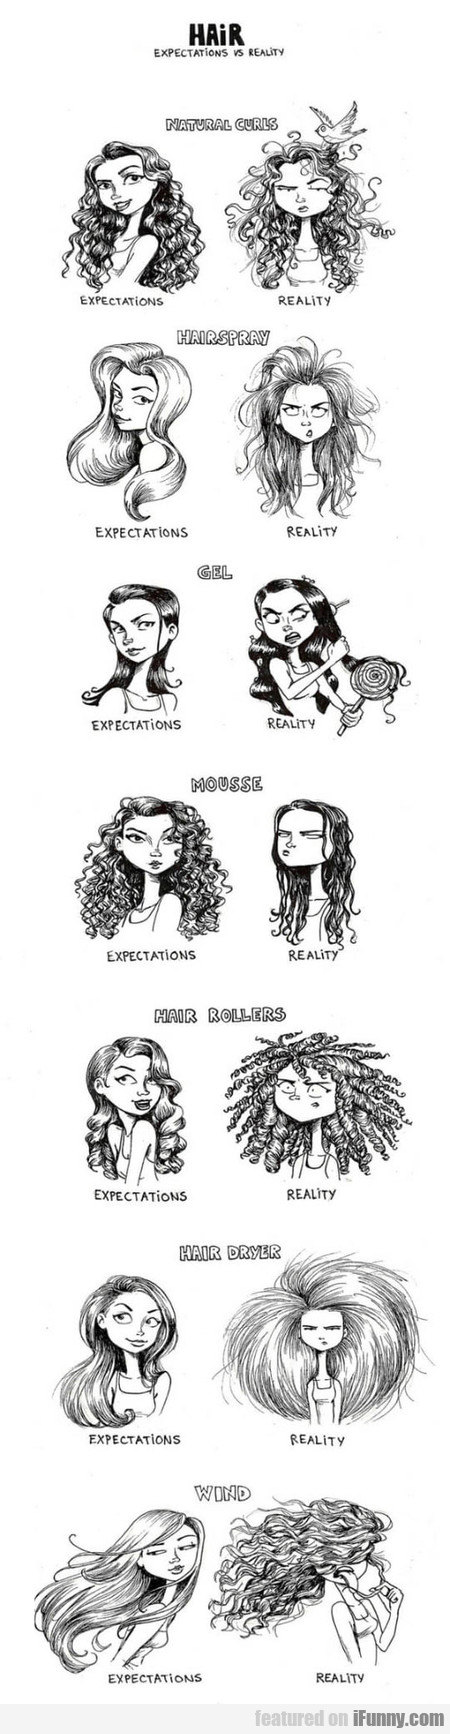 Women's Hair - Expectations Vs. Reality